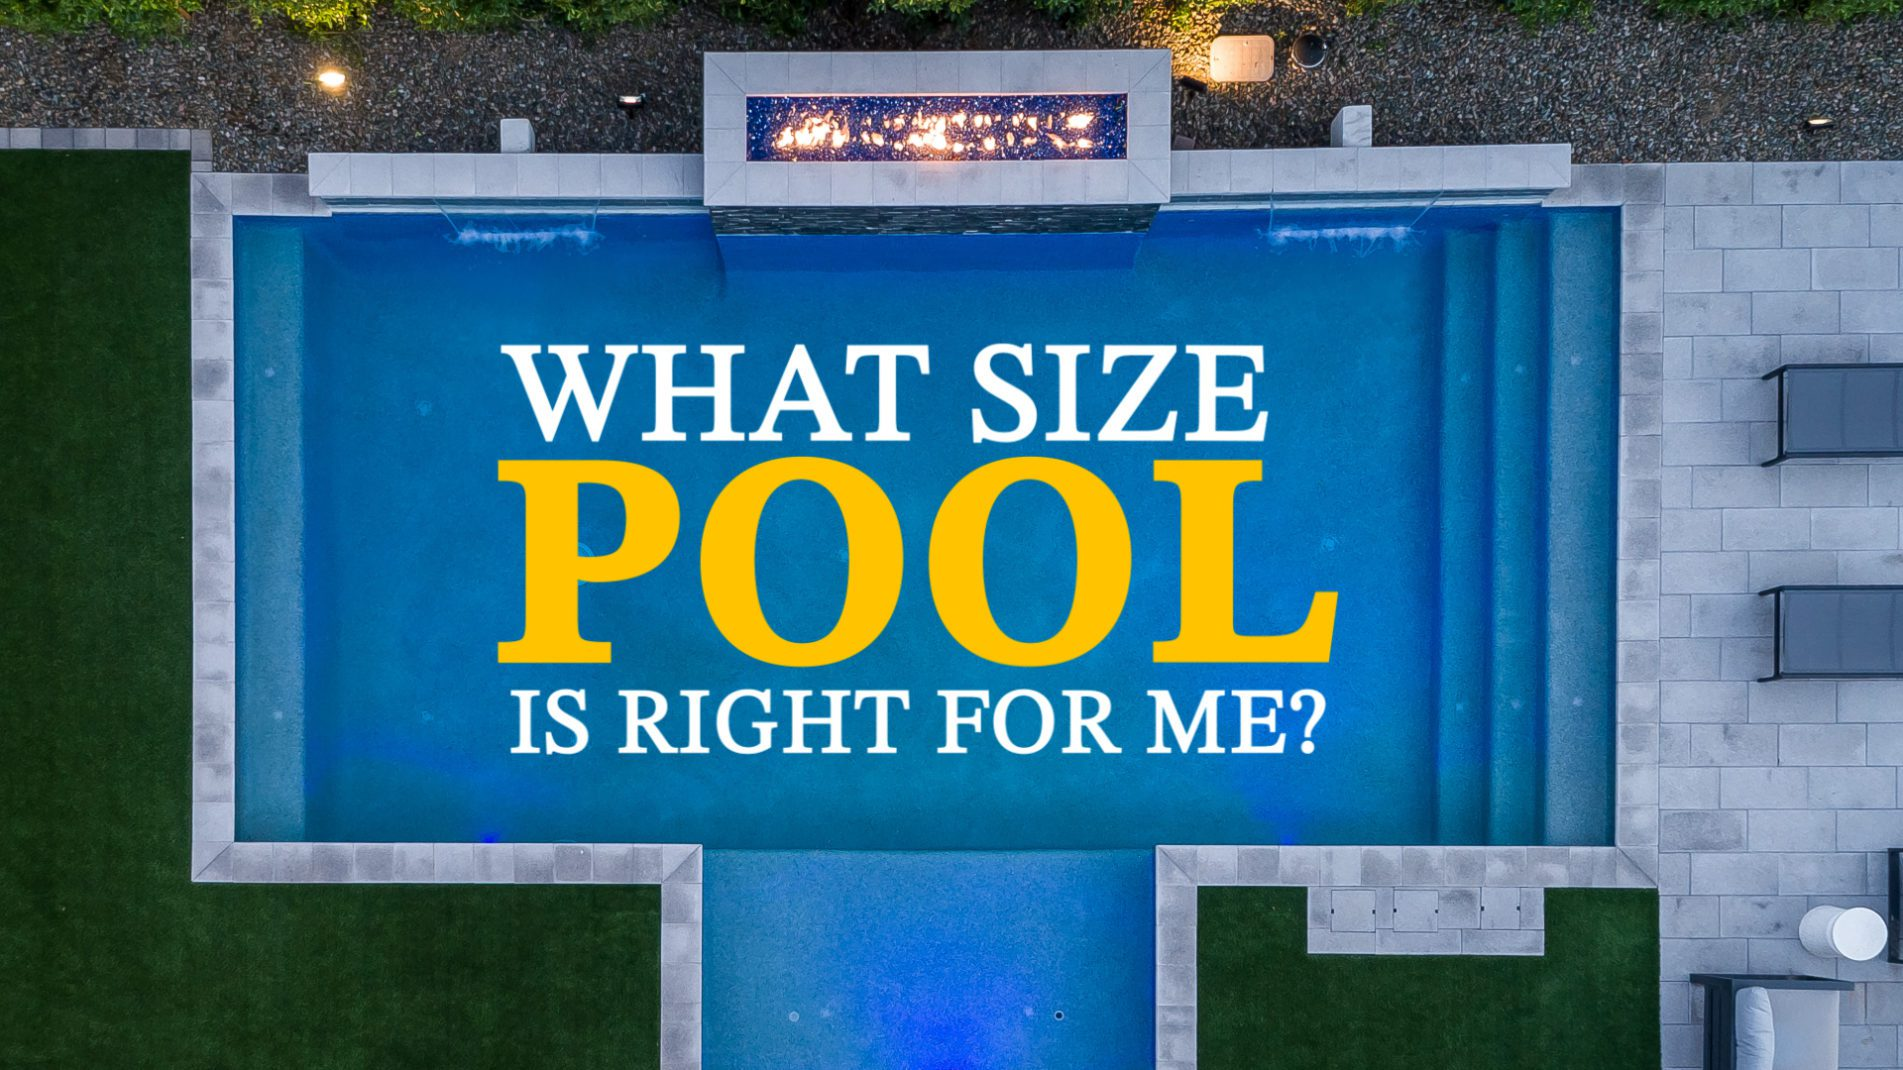 What Size Pool Is Right For Me?